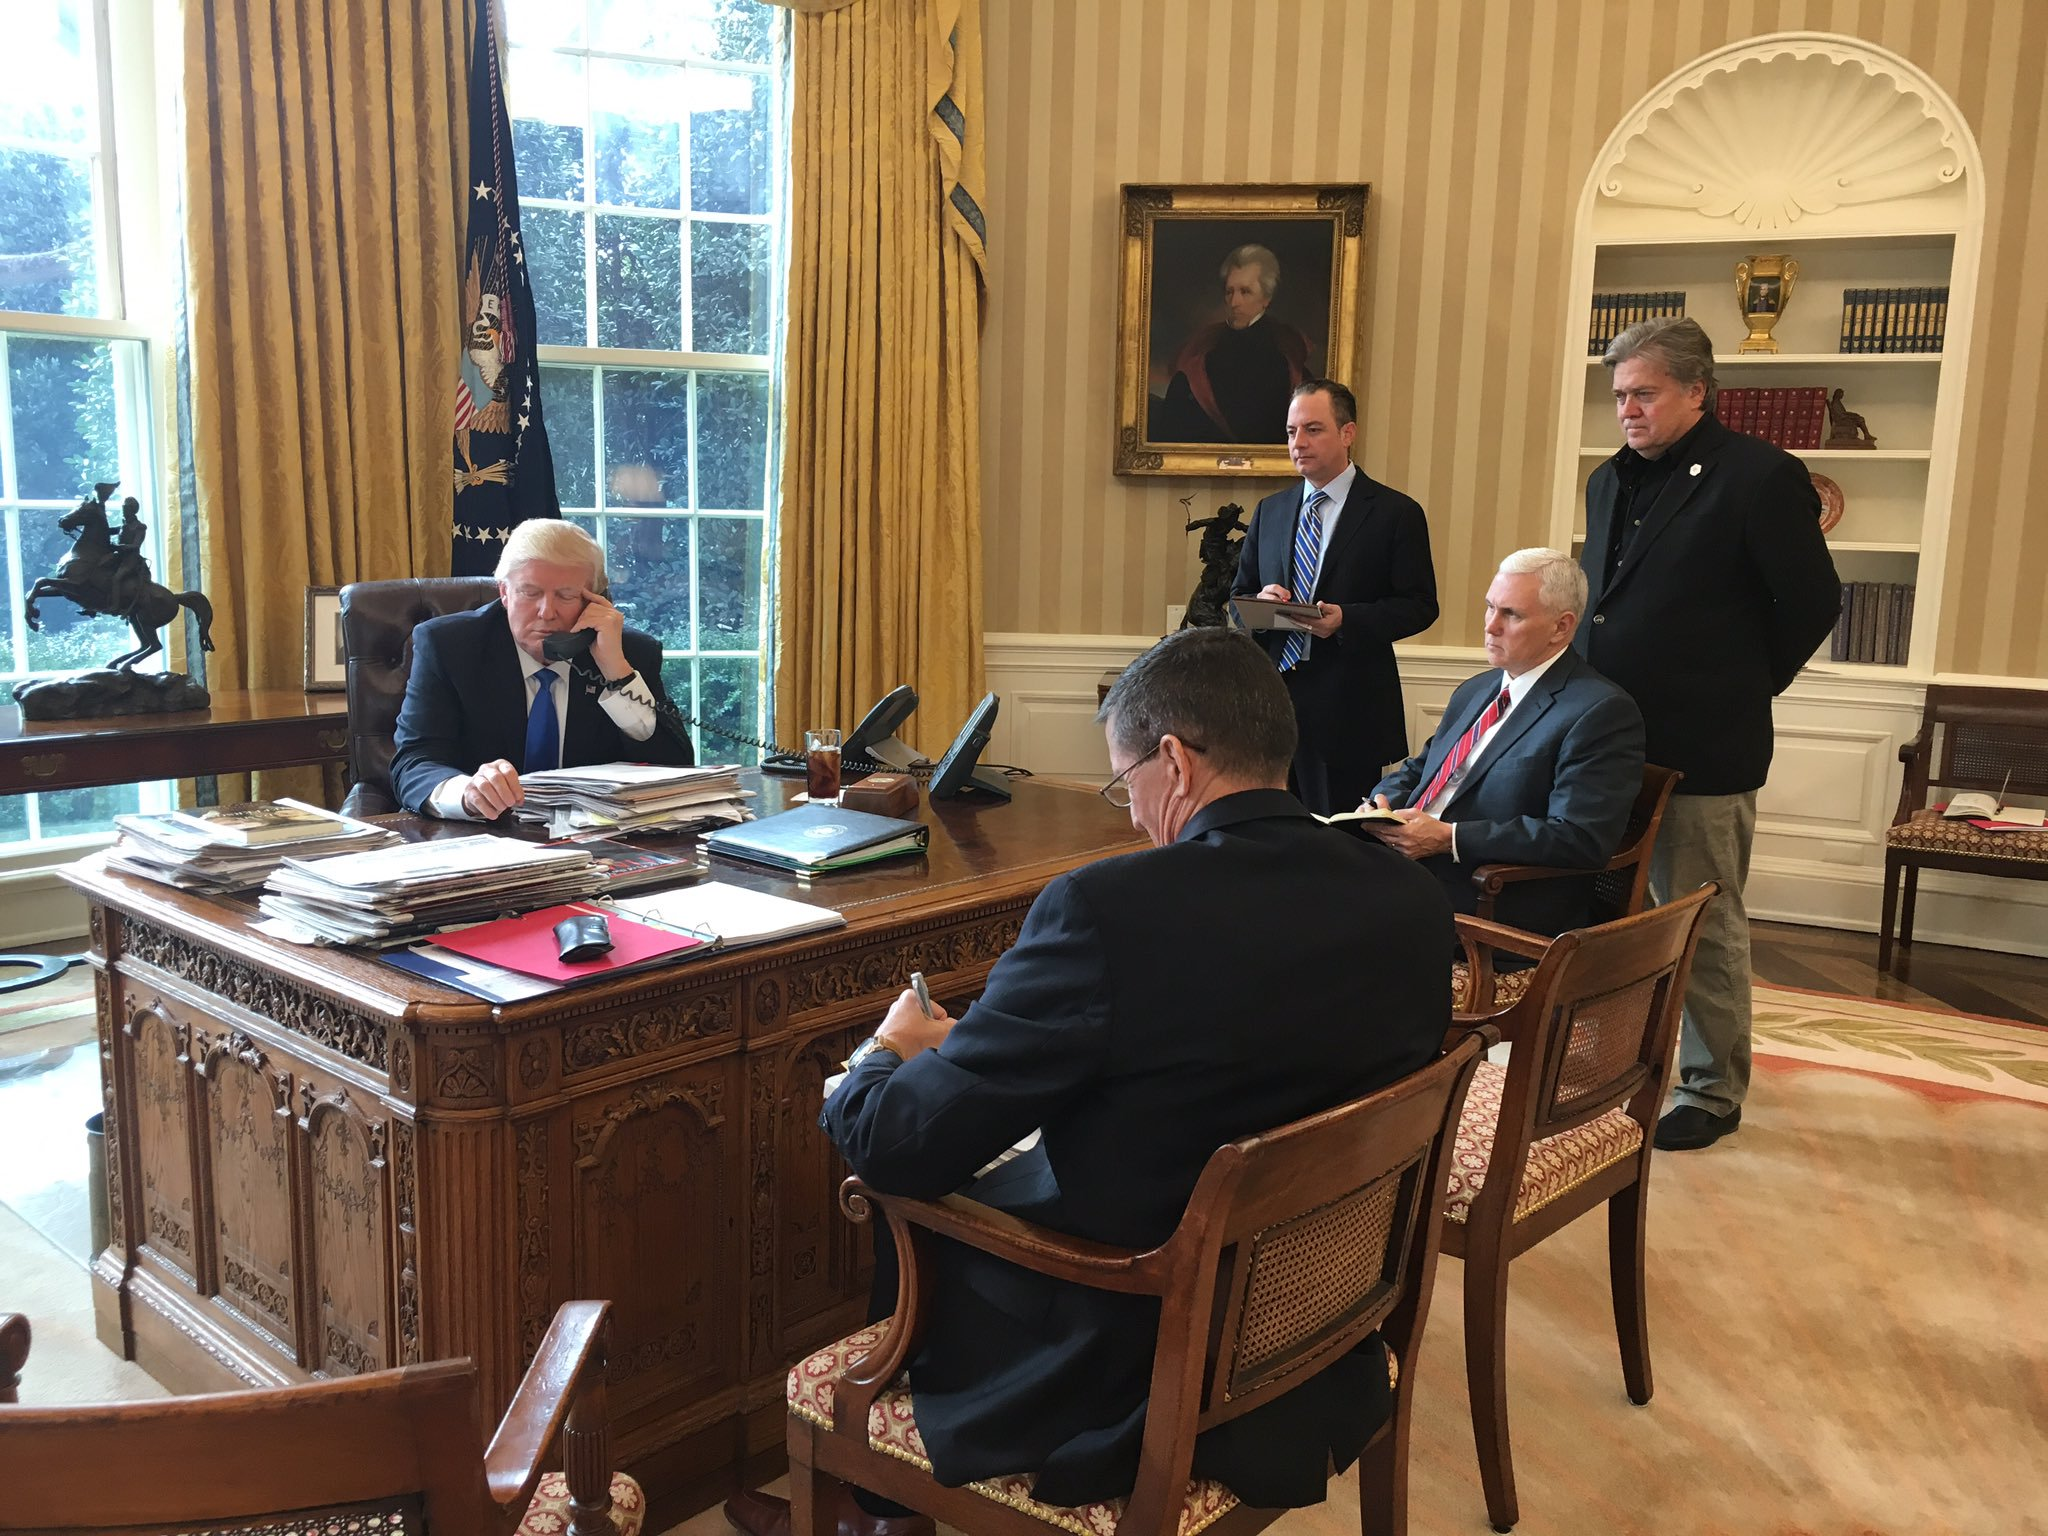 File:Trump Speaking With Putin Oval Office